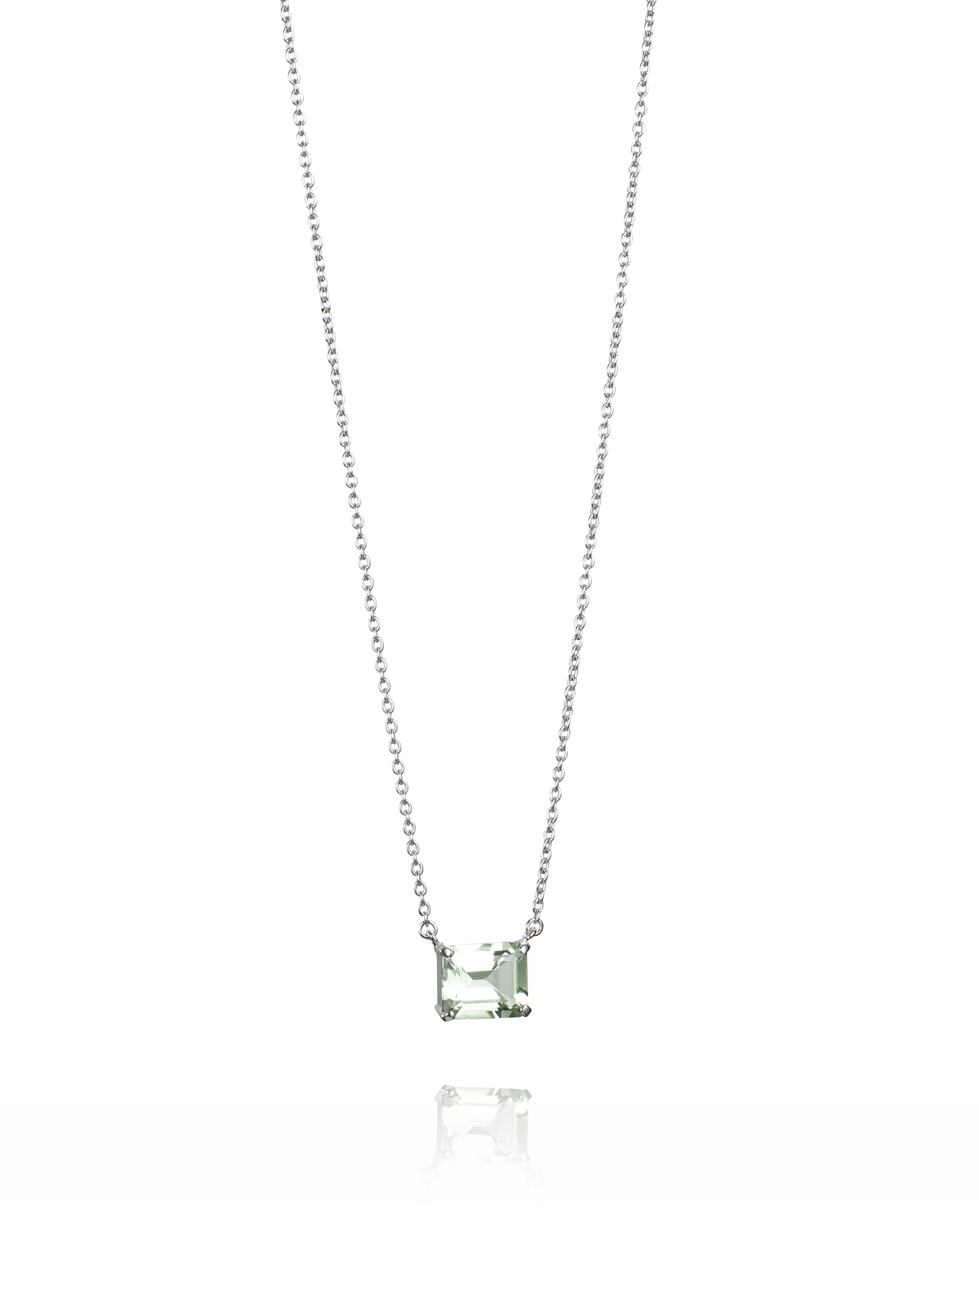 A Green Dream Necklace 10-100-01337(2)